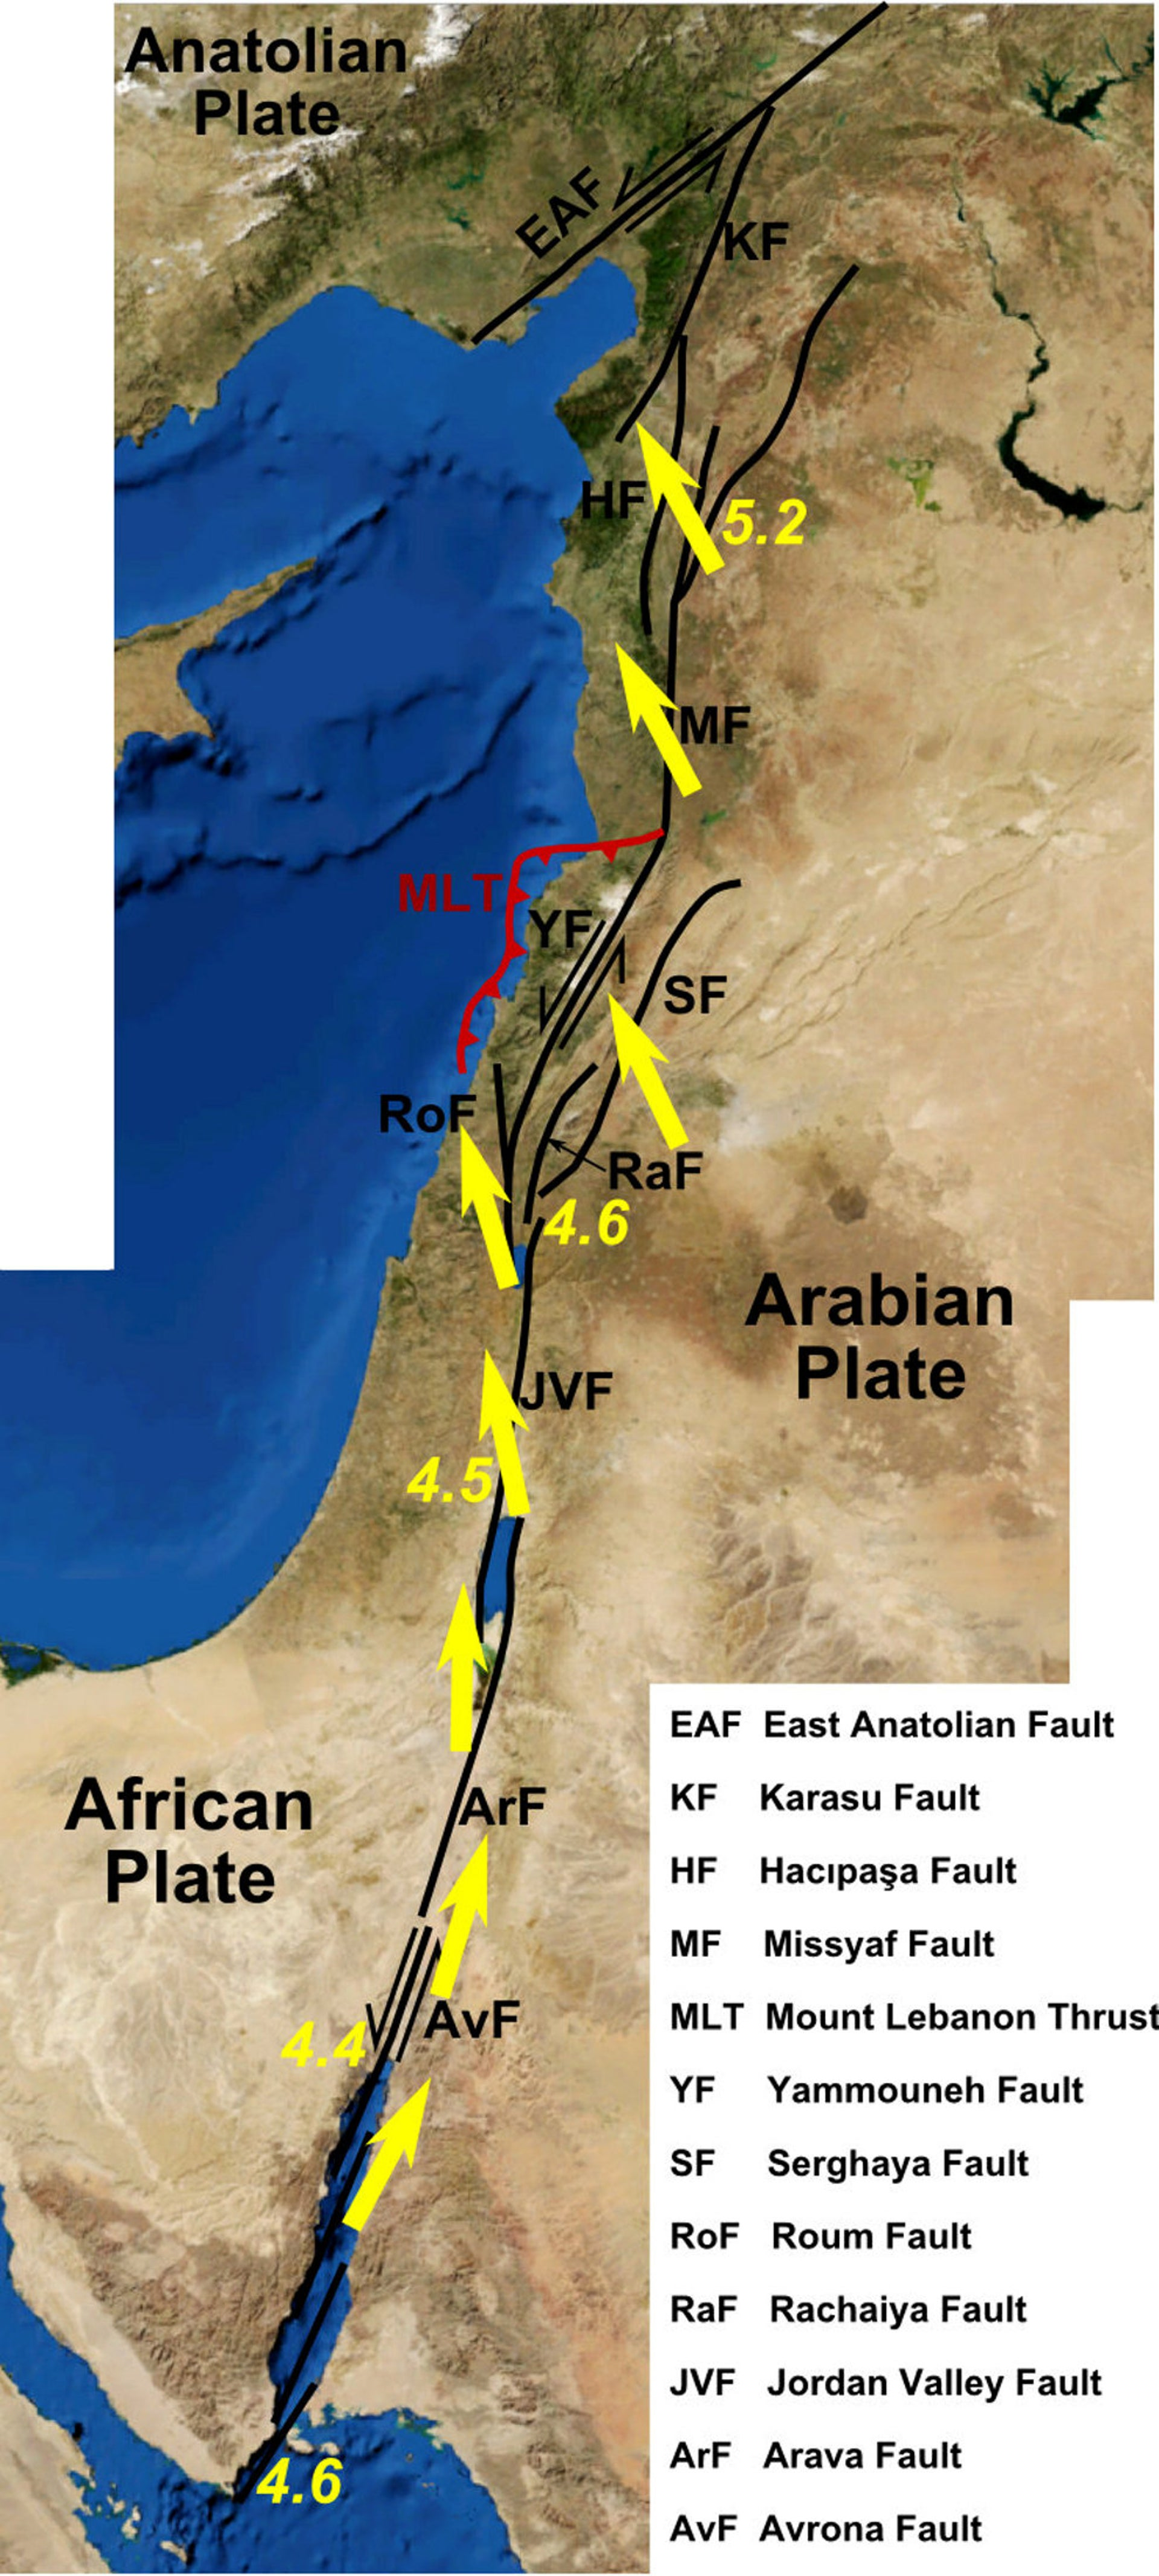 The Dead Sea Rift: Map shows the relative motions of the Arabian Plate and African Plate